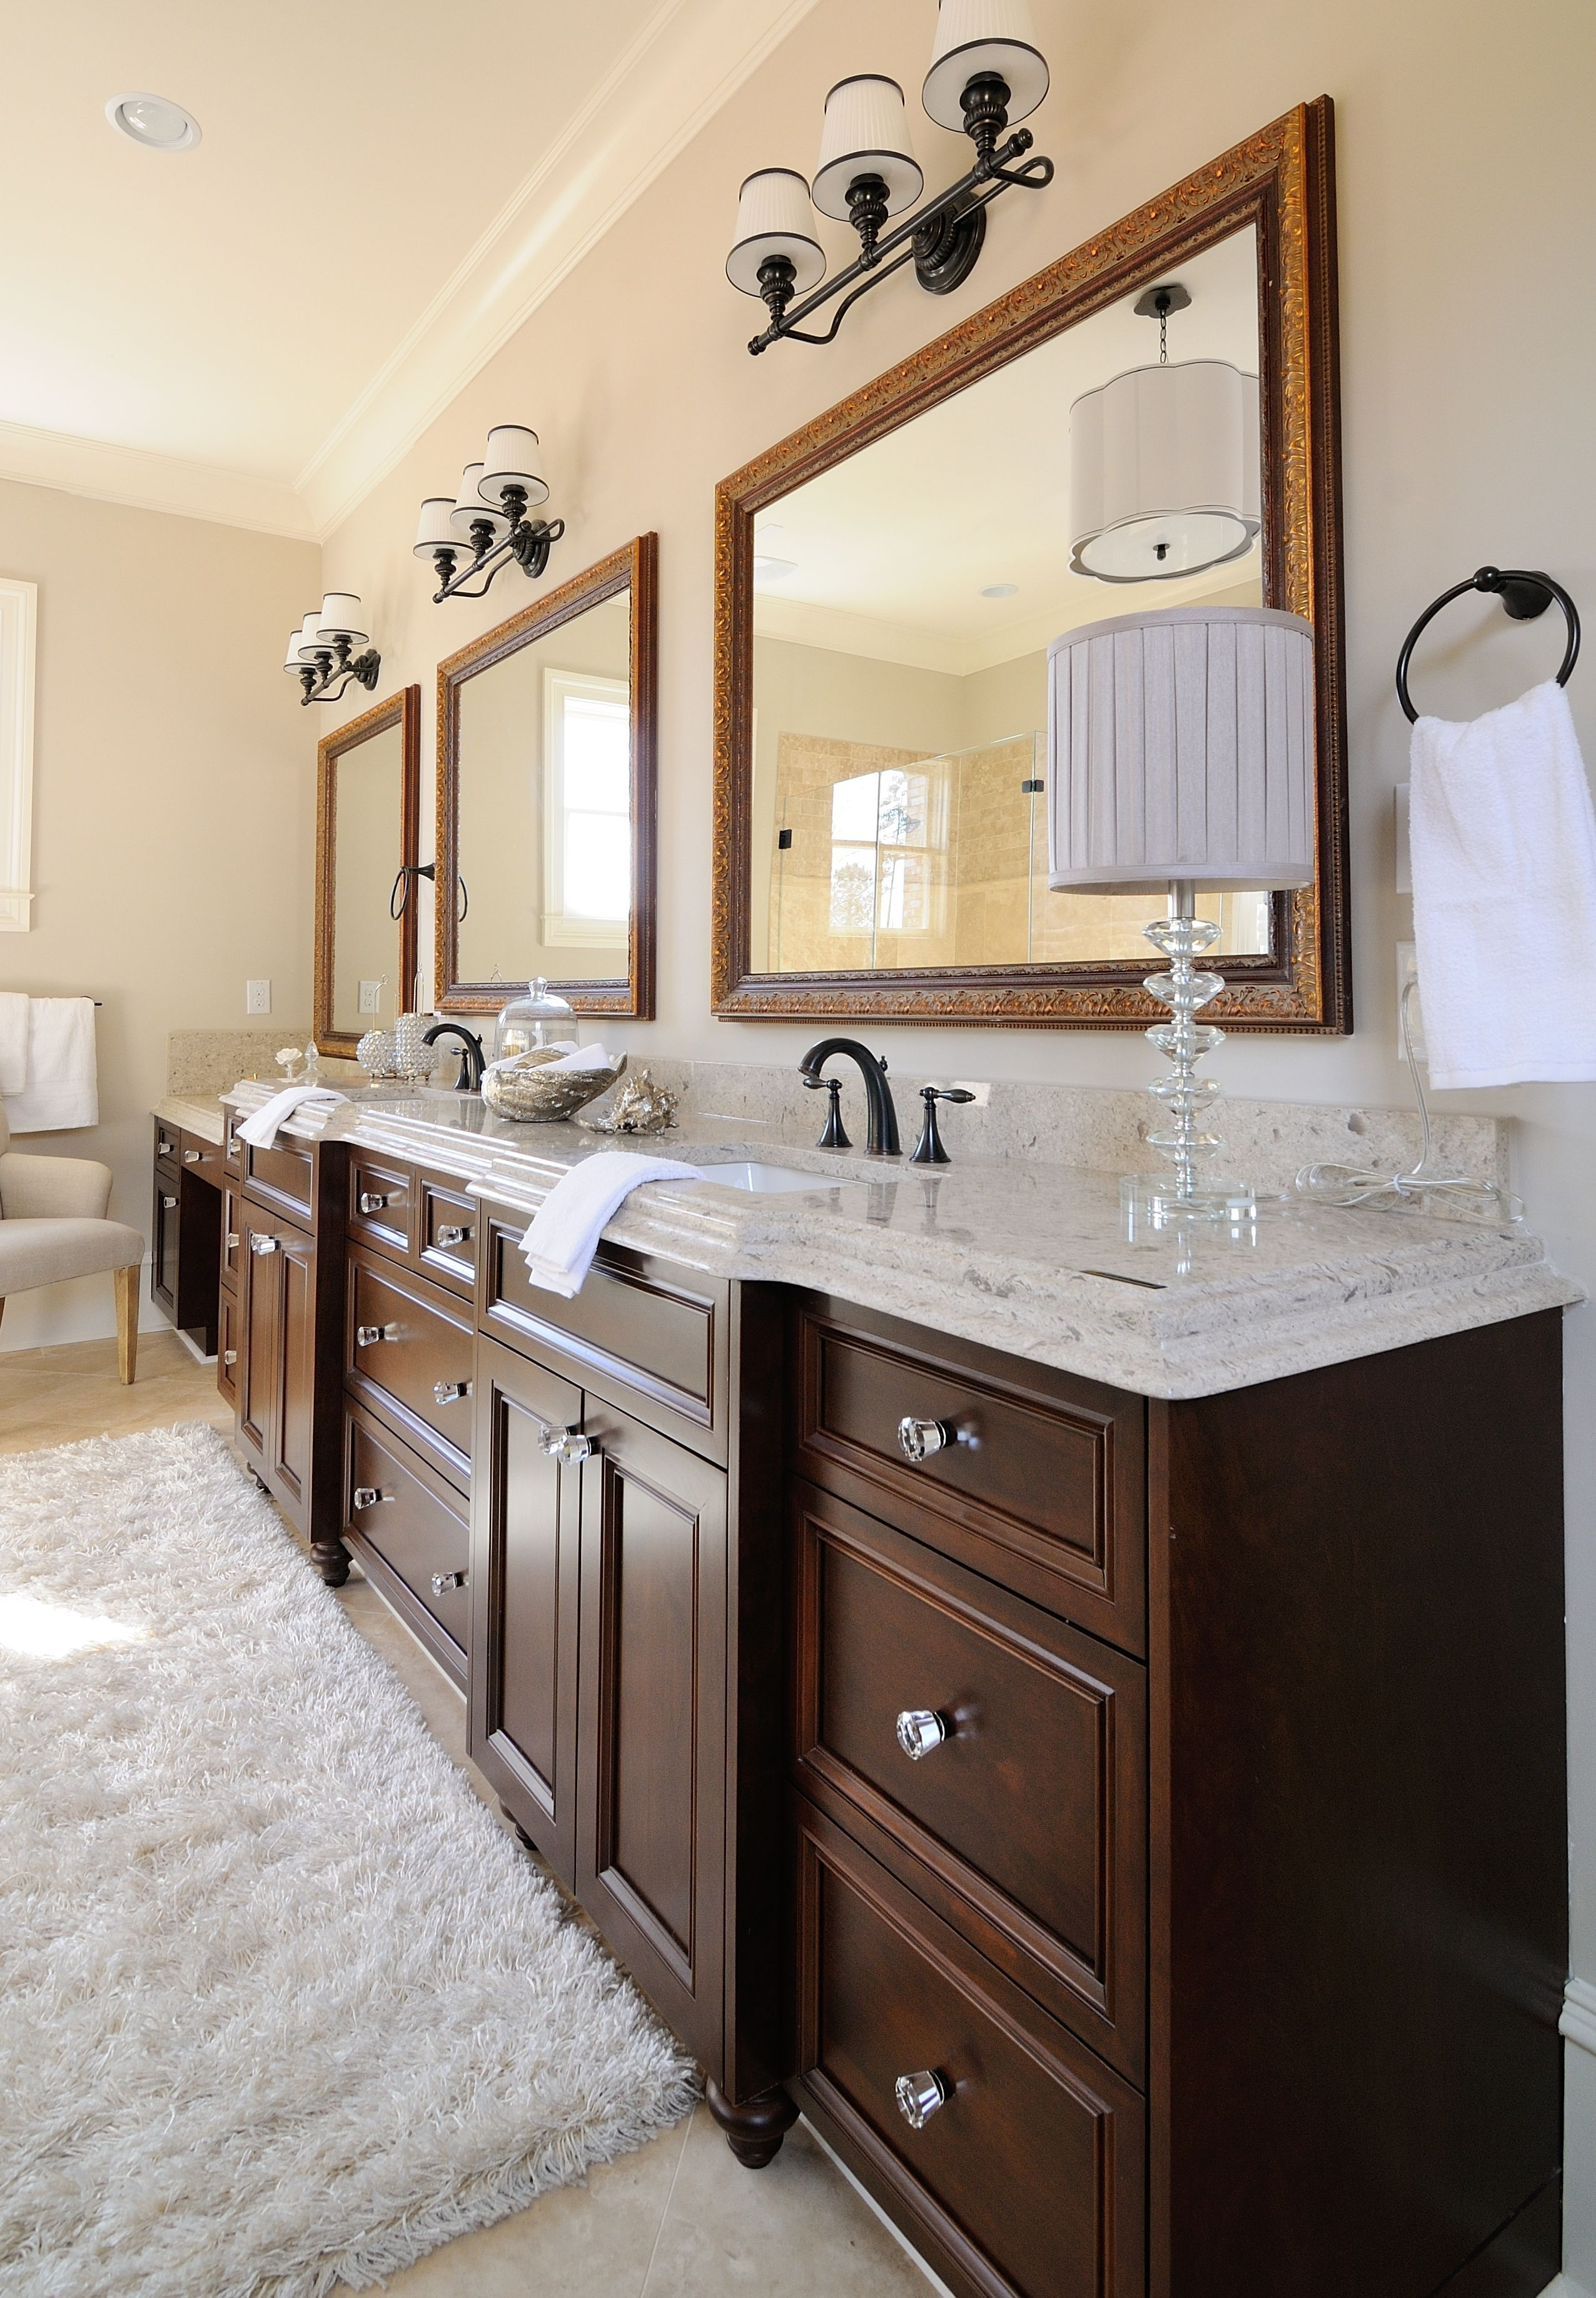 Cambria darlington bathroom countertops by atlanta kitchen true